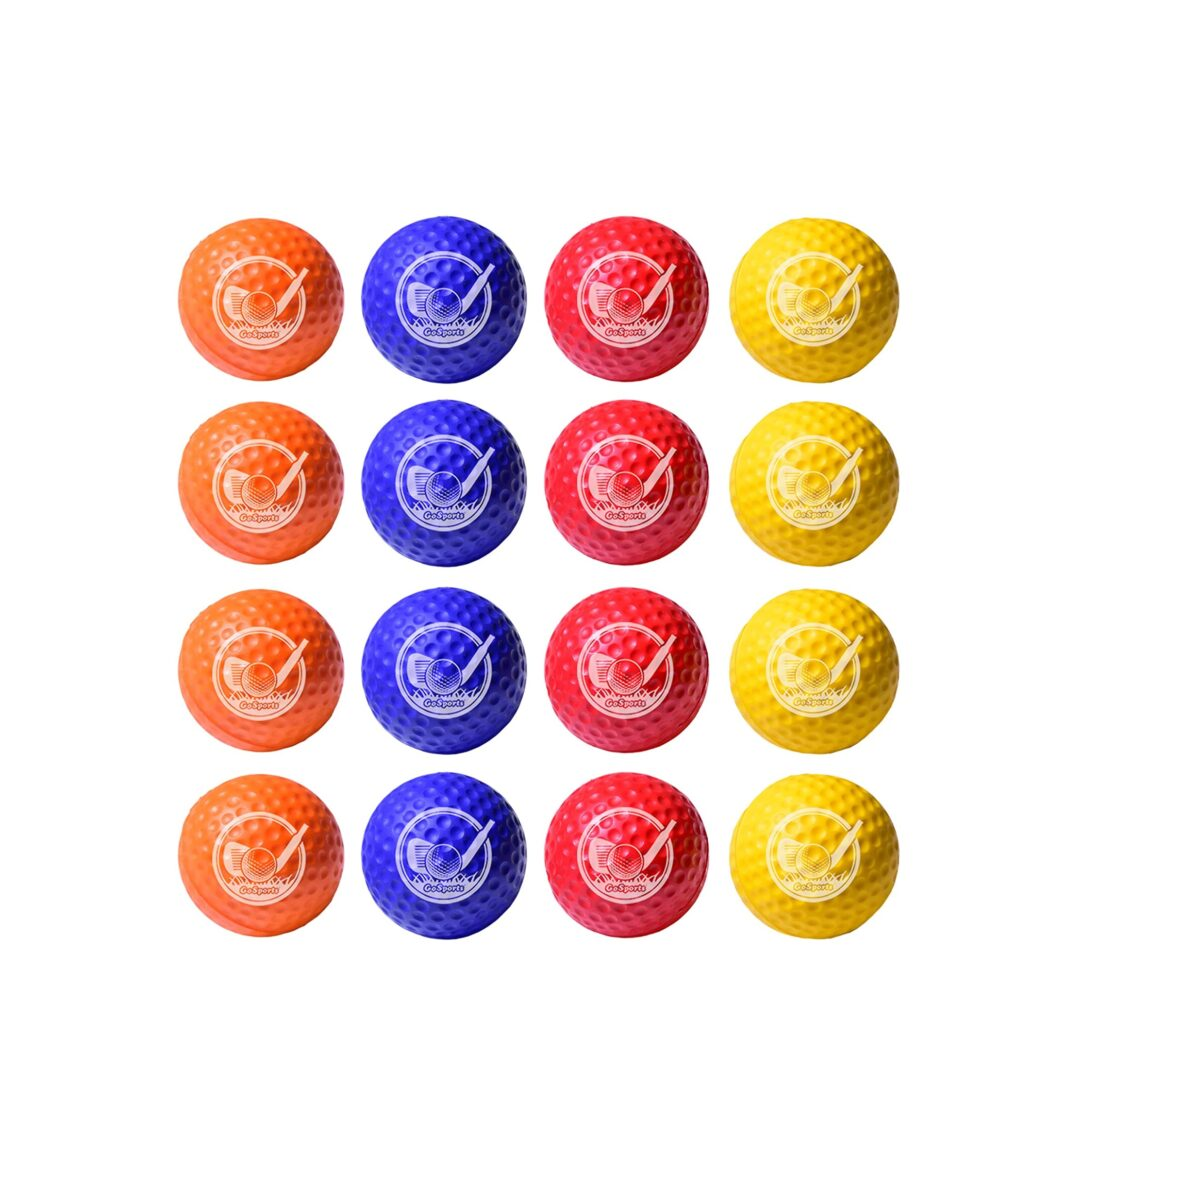 GoSports Foam Golf Practice Balls - Realistic Feel and Limited Flight - Soft for Indoor or Outdoor Training - Choose Between 16 Pack or 64 Pack